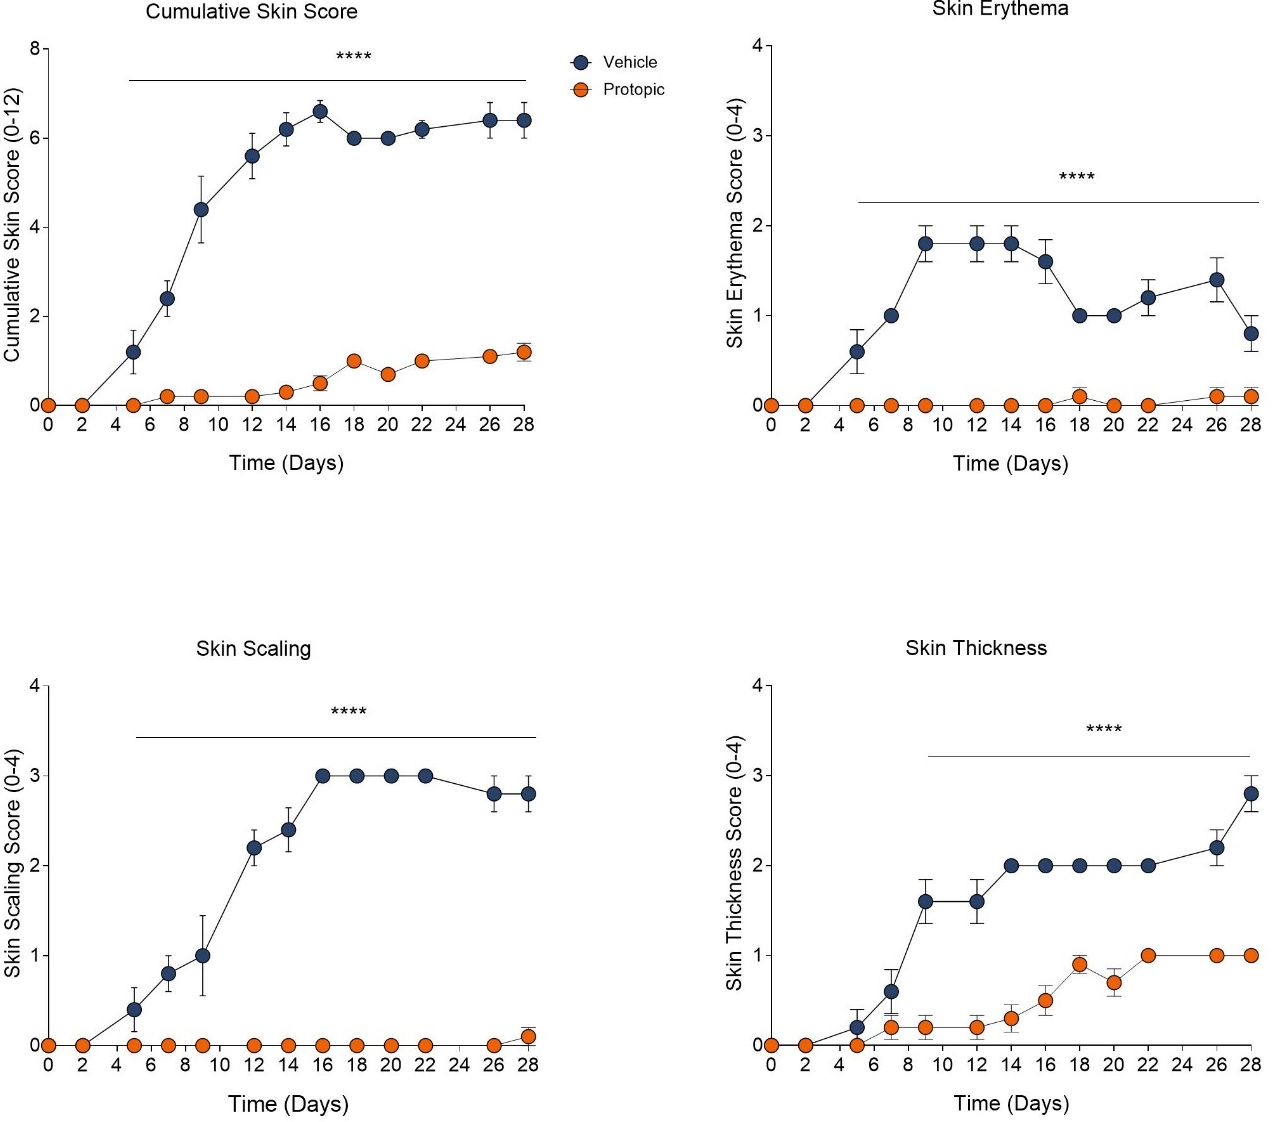 Graphs showing overall efficacy of Protopic on skin clinical scores.